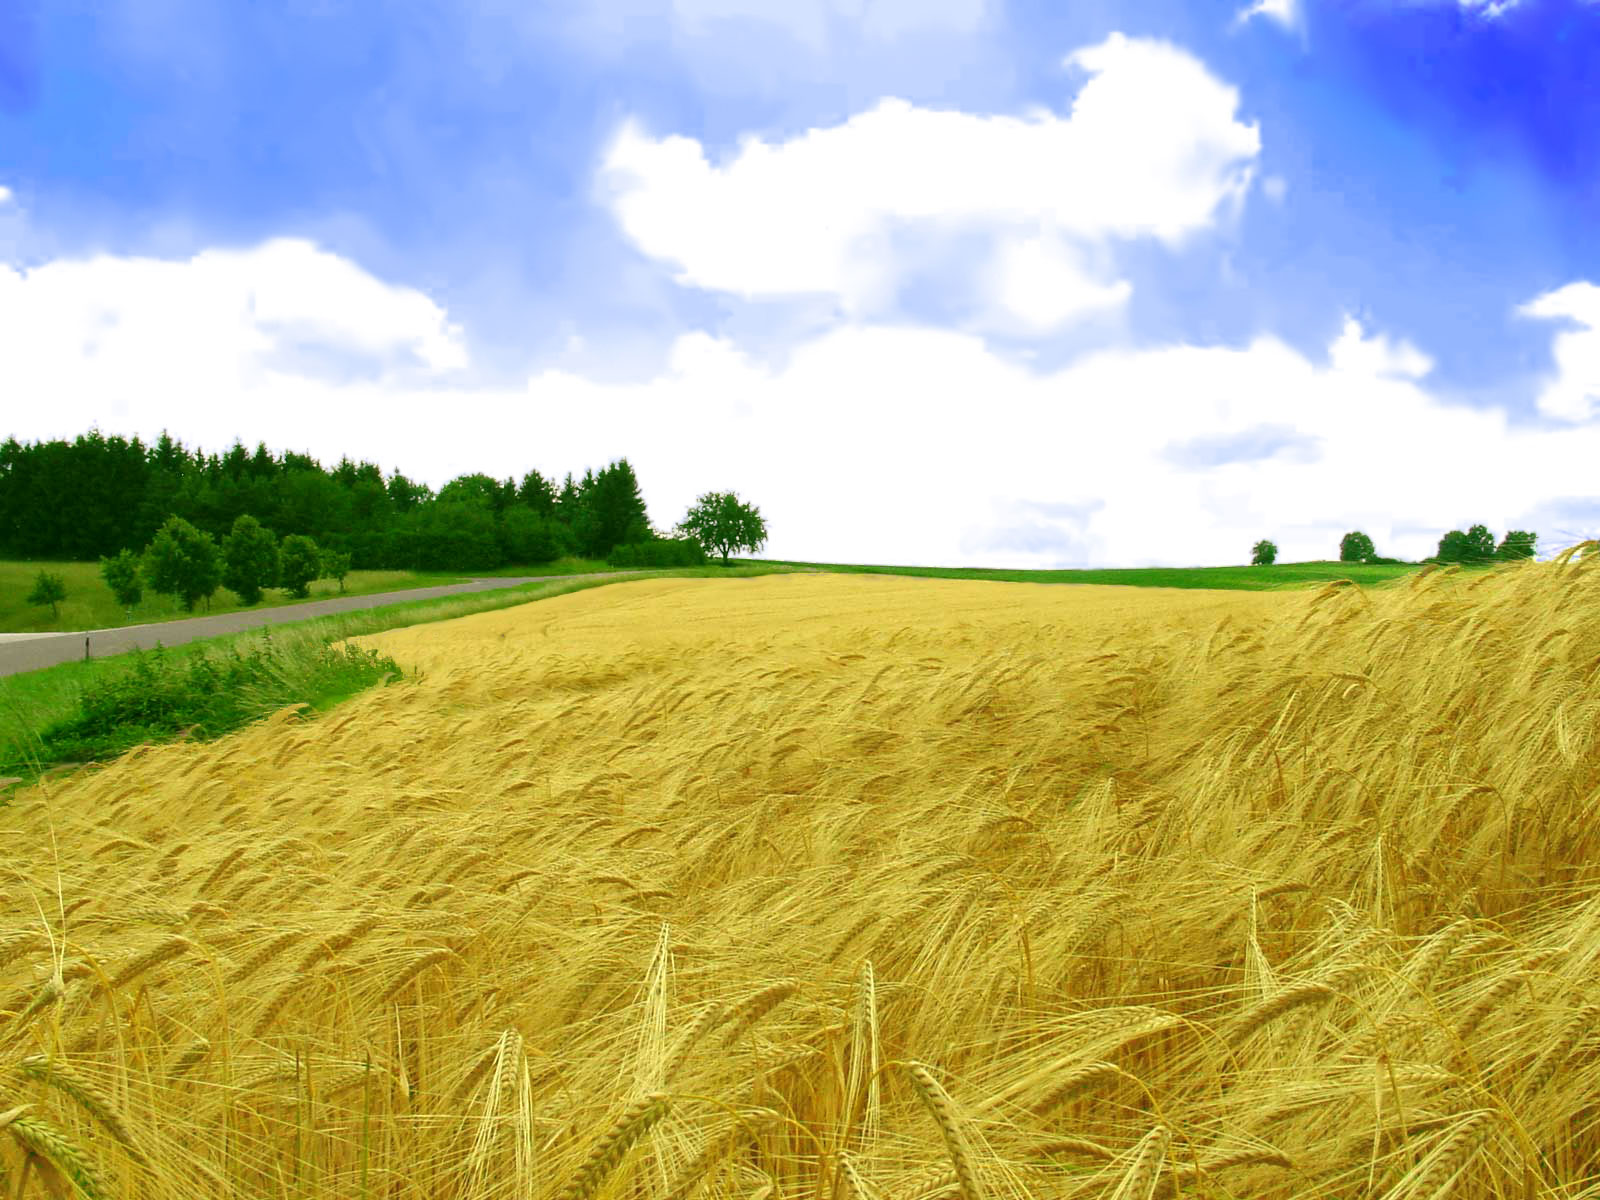 http://1.bp.blogspot.com/_bQ0SqifjNcg/THYA5Oa84dI/AAAAAAAAbp8/Uk4OW53So9o/s1600/golden-field-wallpaper.jpg